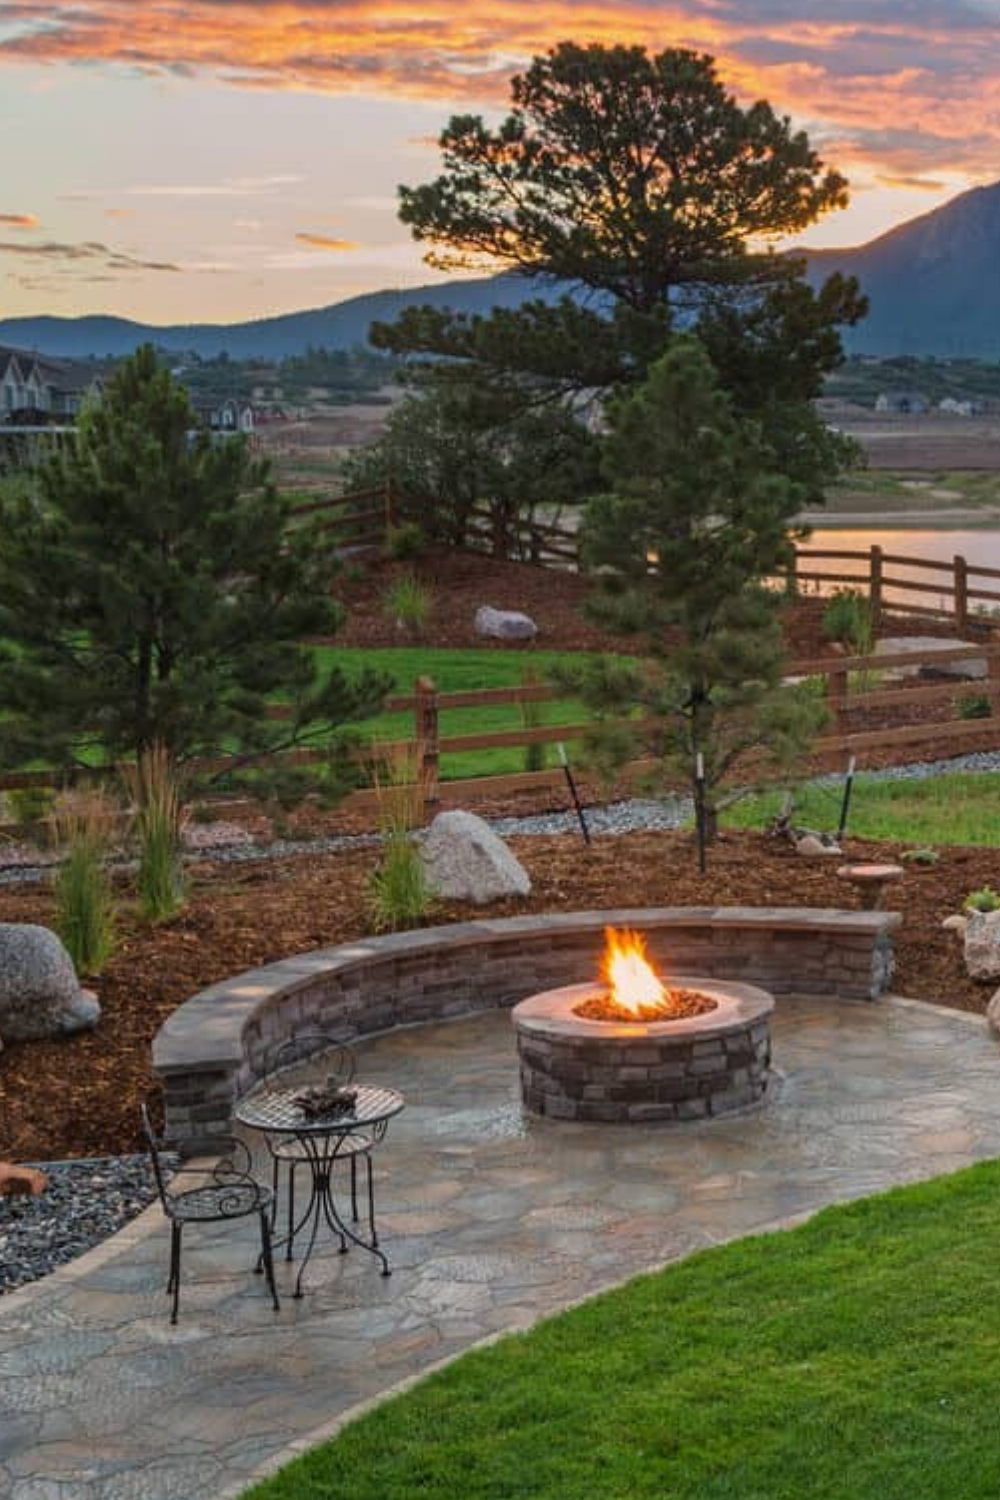 1 of 44 Fire Pit Sitting Ideas: Warmth With a View